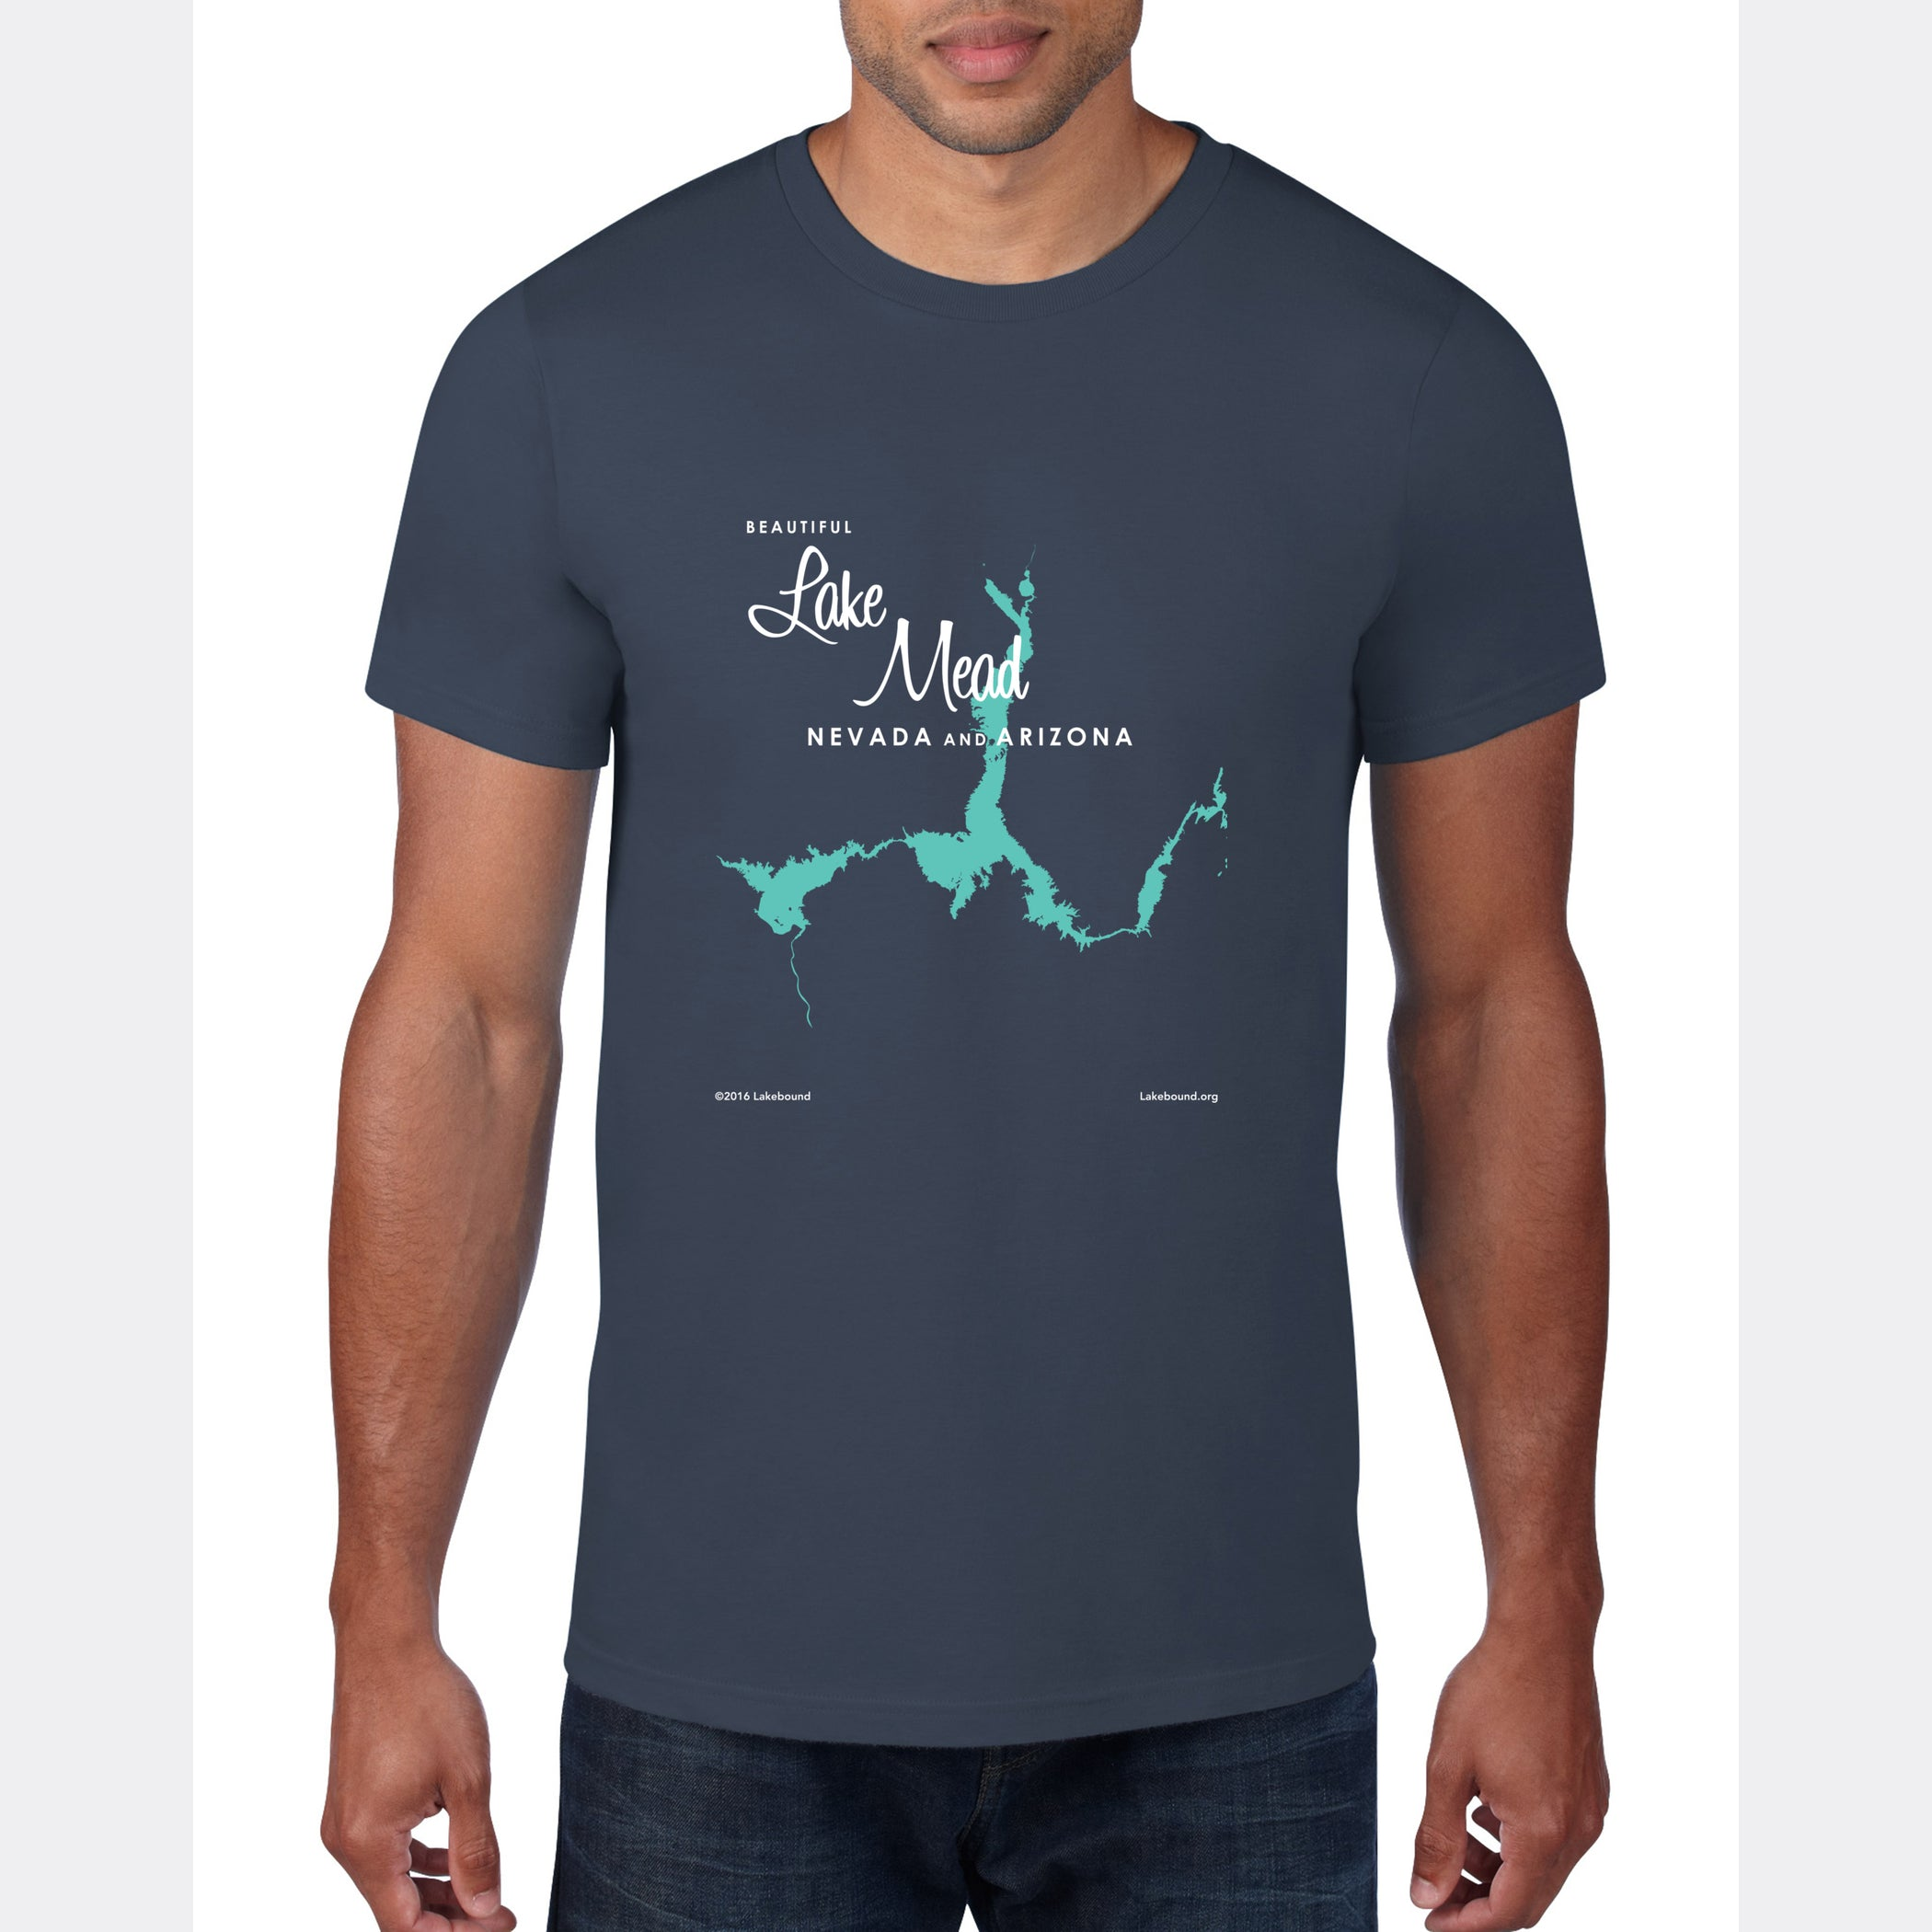 Lake Mead Arizona Nevada, T-Shirt